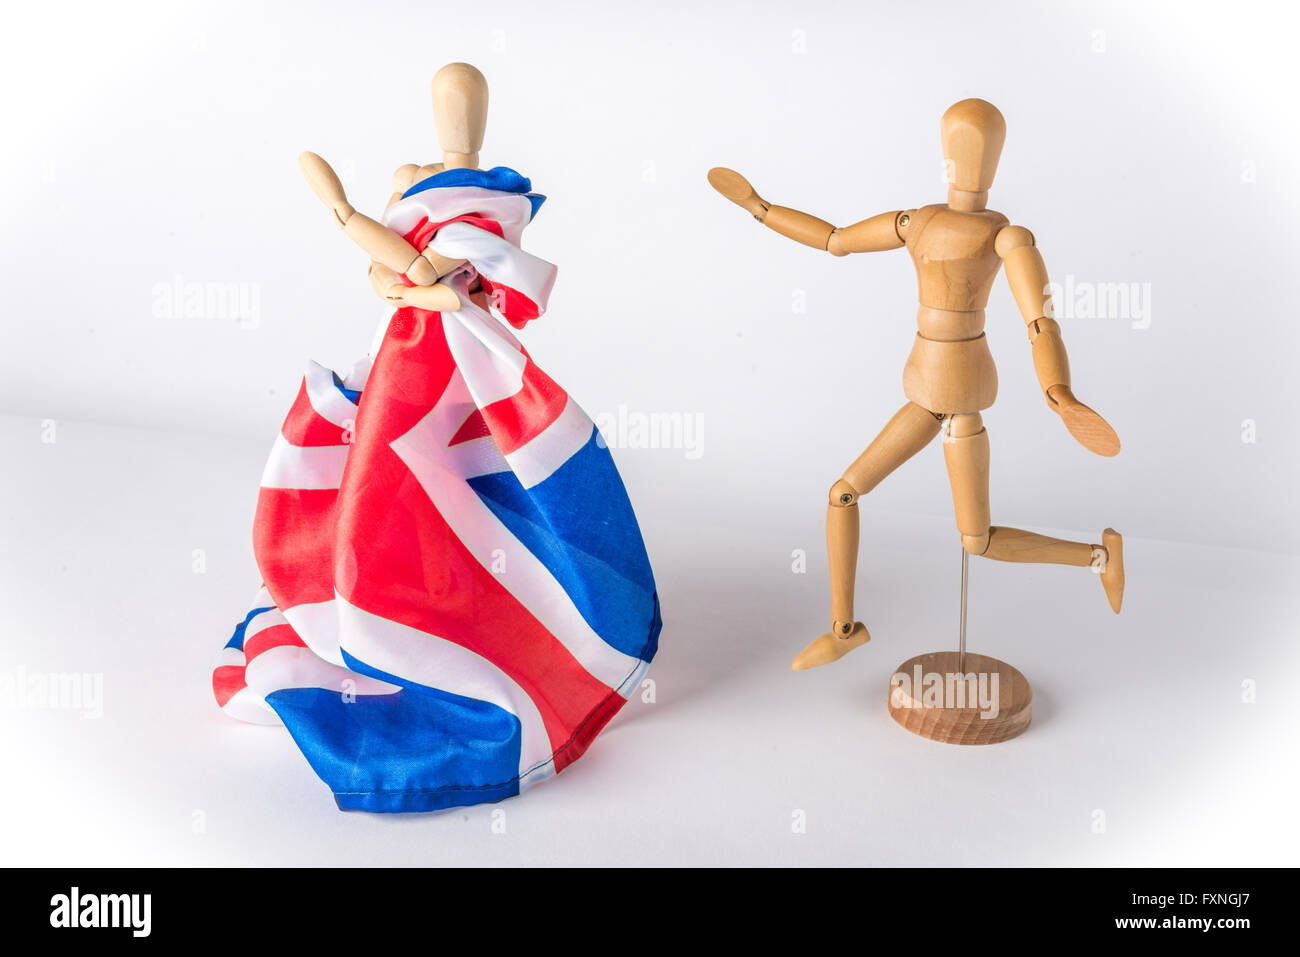 Wooden mannequins symbolizing UK leaving EU in Brexit Stock Photo